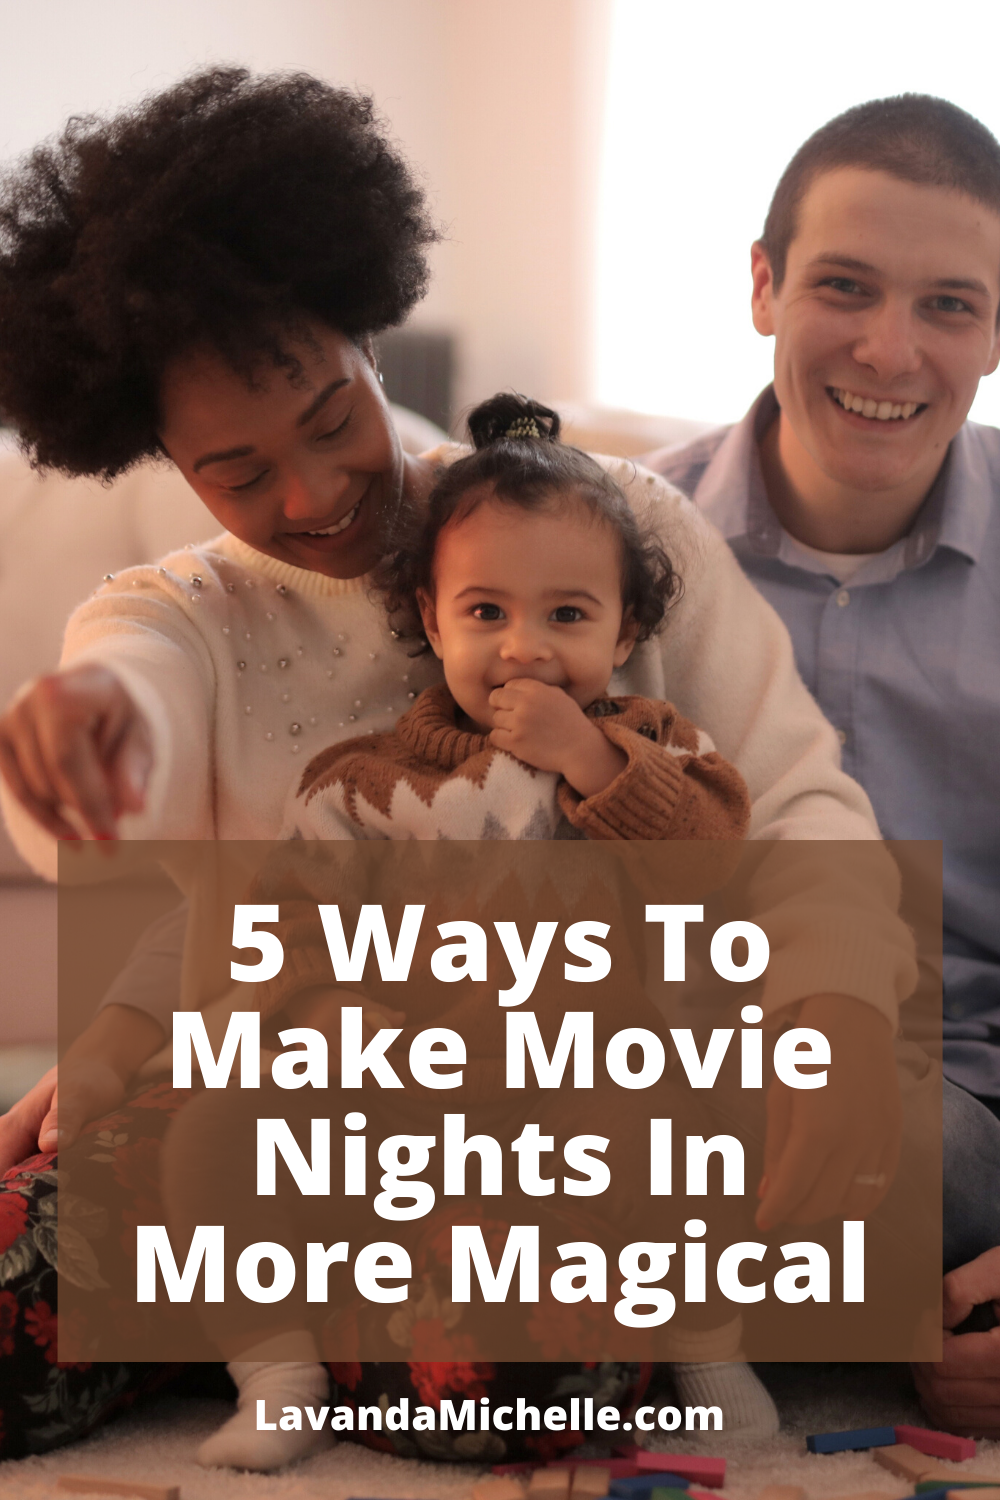 5 Ways To Make Movie Nights In More Magical